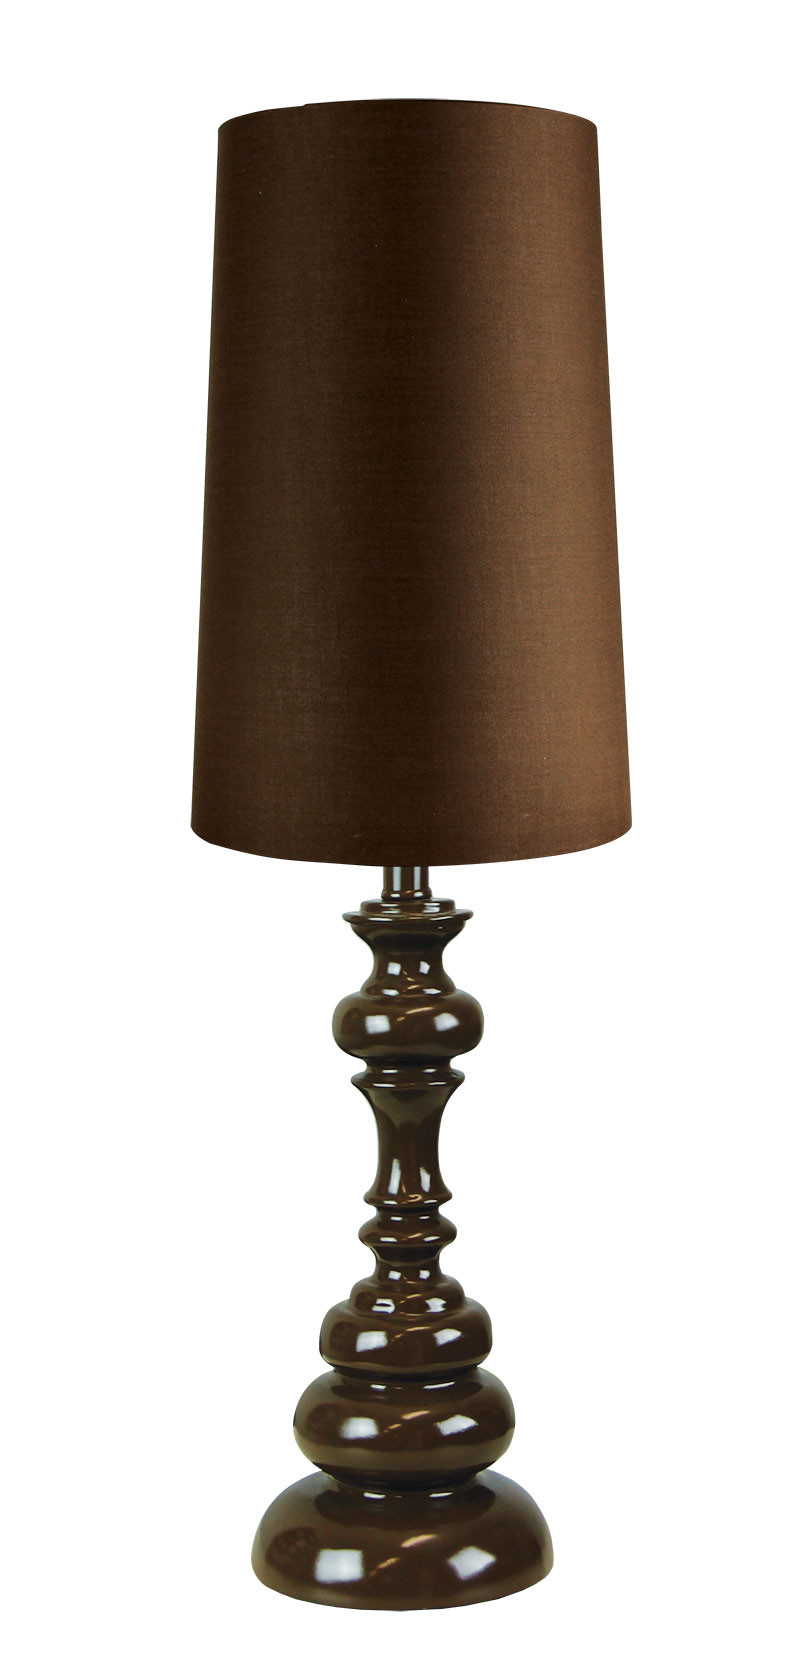 New Table Lamp Base Only Ebay